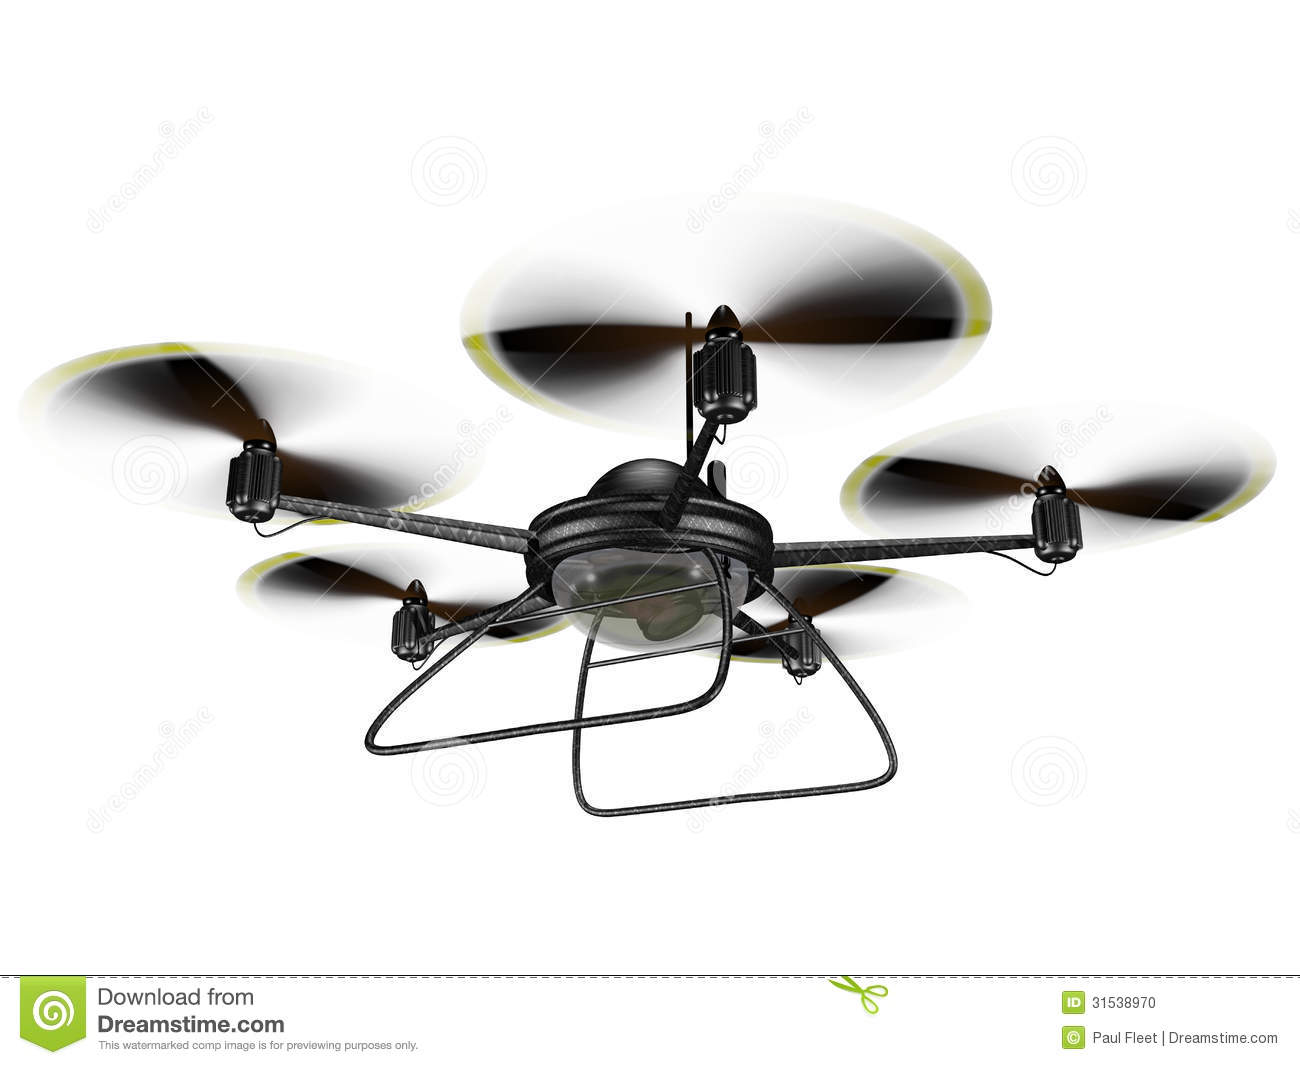 spy drone helicopter with Stock Photo Isolated Spy Drone Illustration Hovering Image31538970 on High School Drone Designers Head D C Weekend together with Game Of Drones The Australian Federal Police Wants To Use Uavs For Domestic Surveillance furthermore Product product id 1568 also Stock Photo Isolated Spy Drone Illustration Hovering Image31538970 likewise Stock Illustration Flying Drone Isolated White Background Clipping Path D Render Concept Design Remote Air Image54637320.